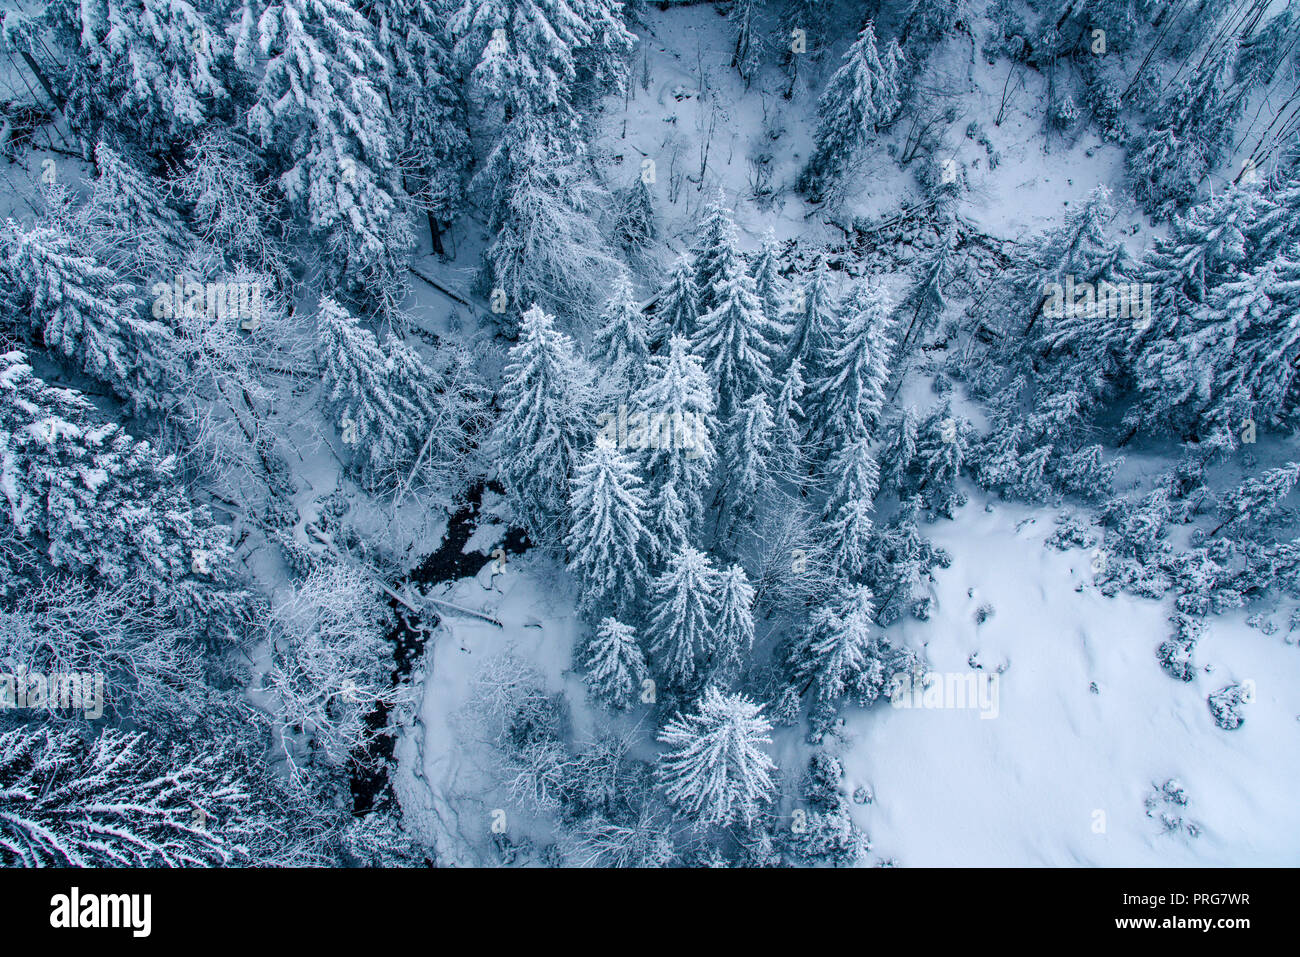 Aerial view of snow covered pine forest in Switzerland. Stock Photo